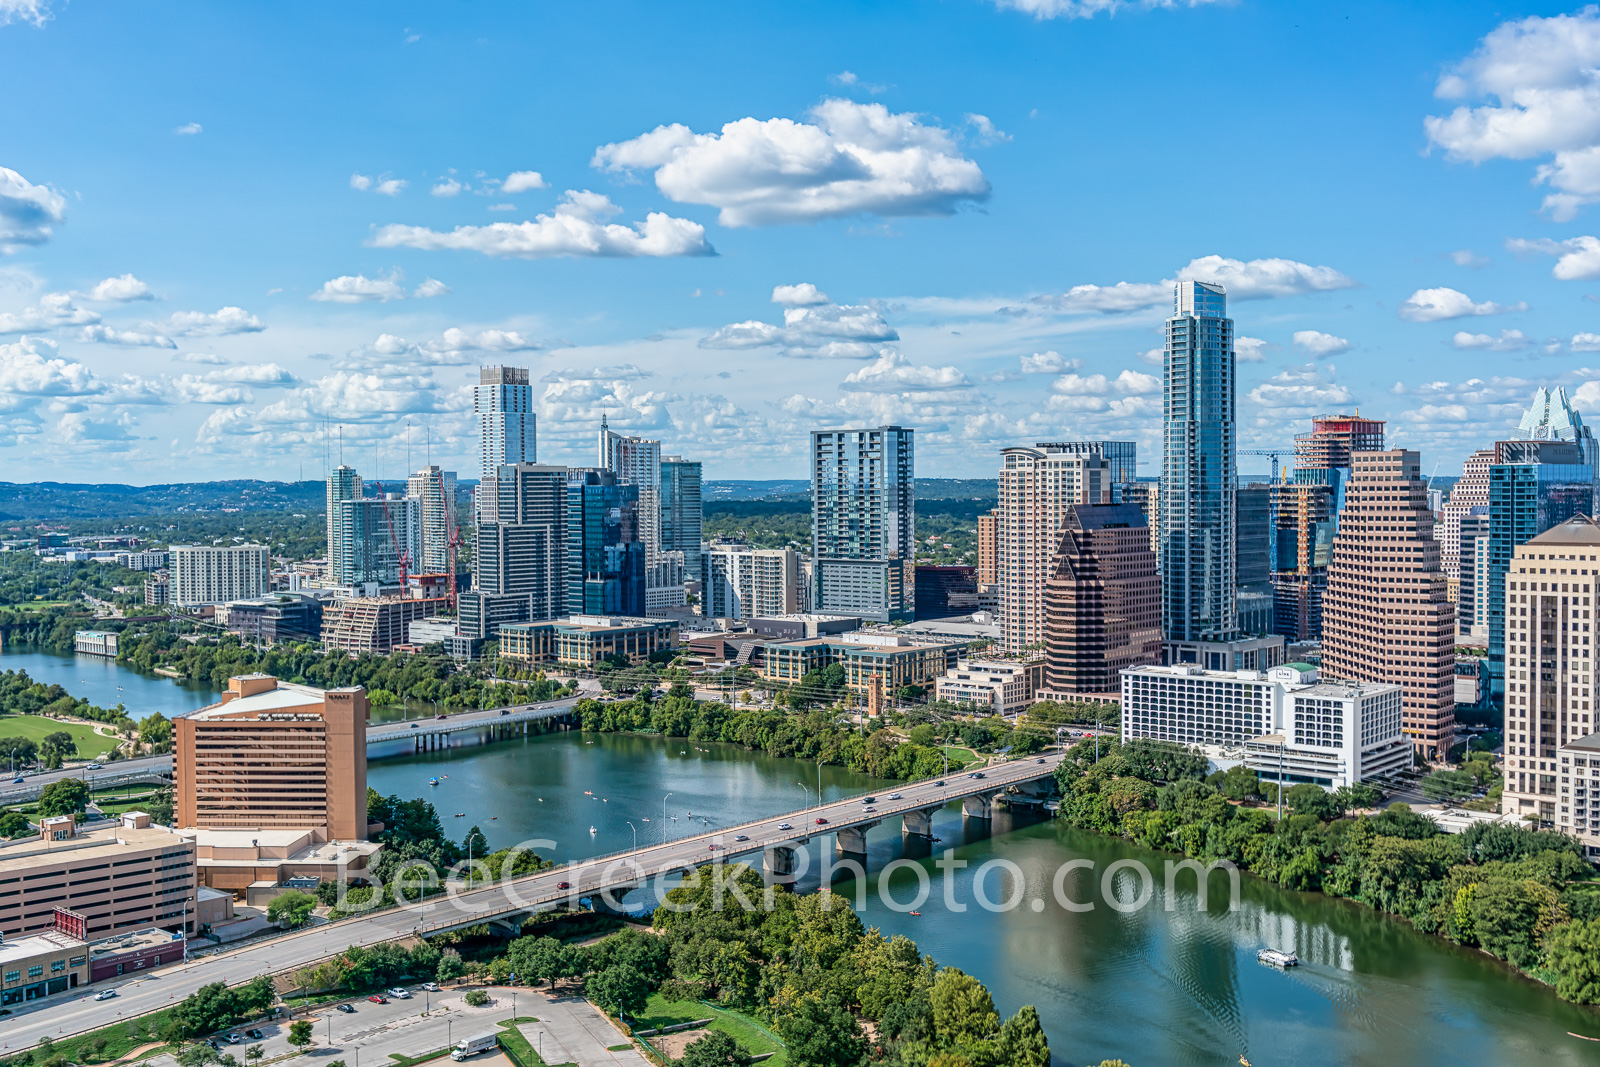 texas, austin skyline, austin, austin downtown, downtown austin, austin texas, austin tx,skyscraper, high rise, buildings, aerial, usa, city of austin,  pano, panorama, city of austin, lady bird lake,, photo